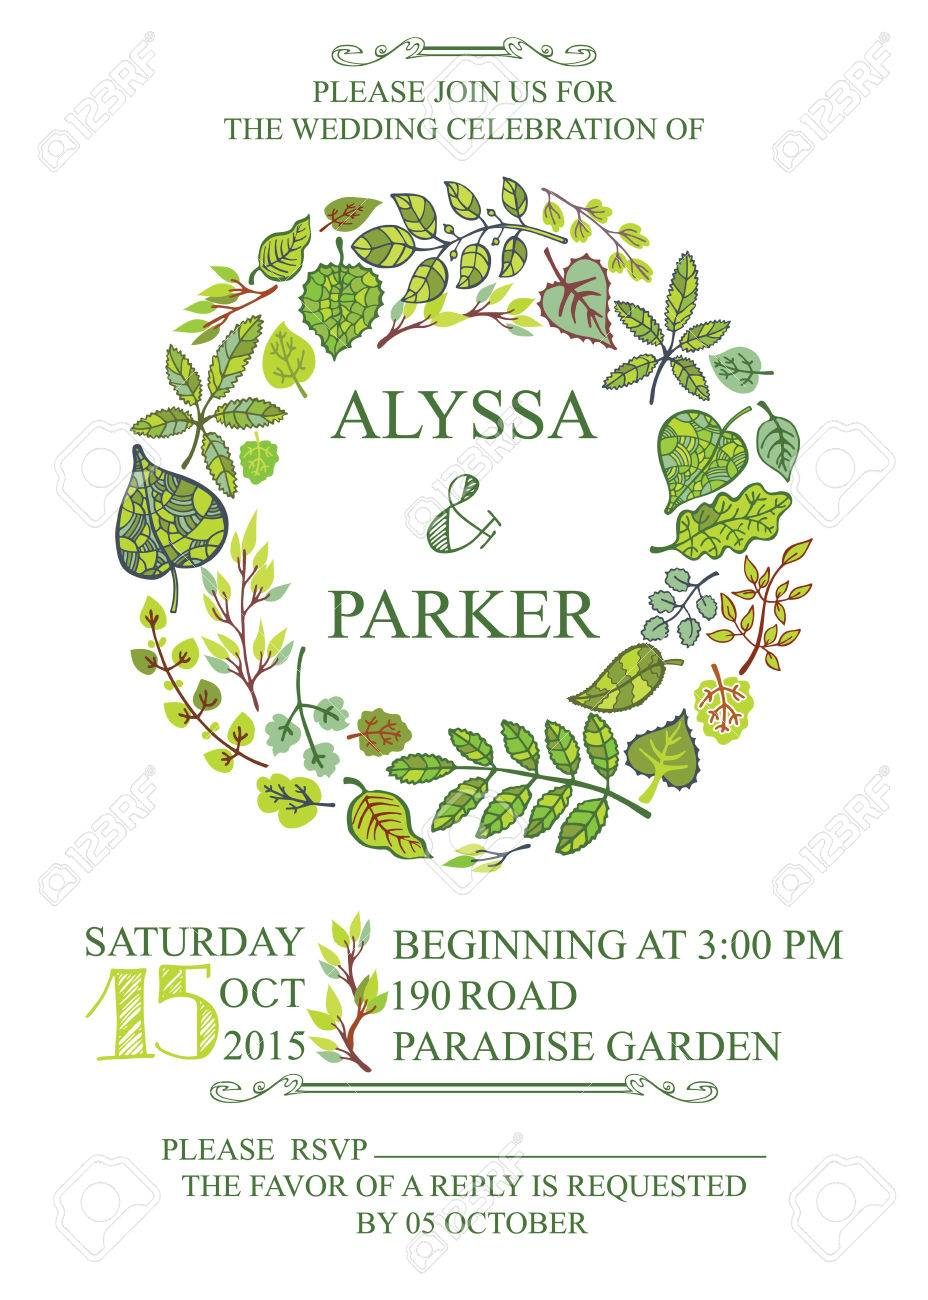 Spring wedding invitation with green leaves wreath royalty free spring wedding invitation with green leaves wreath stock vector 36802891 stopboris Images